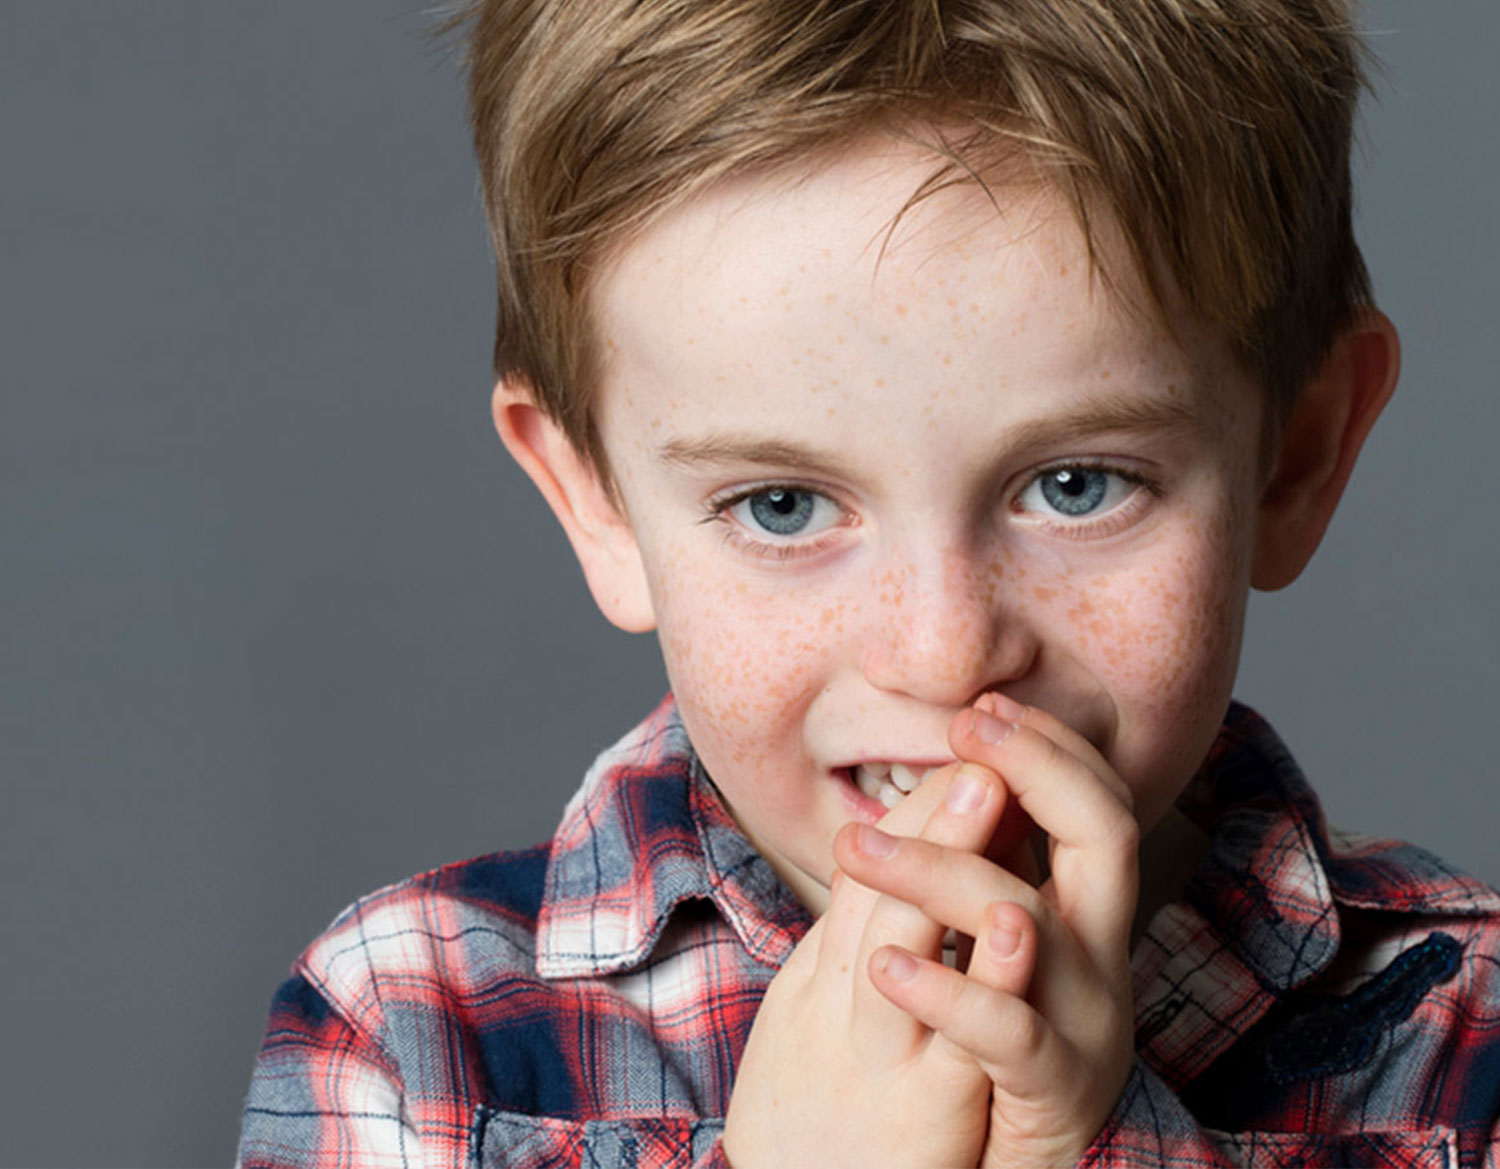 boy with hands on face